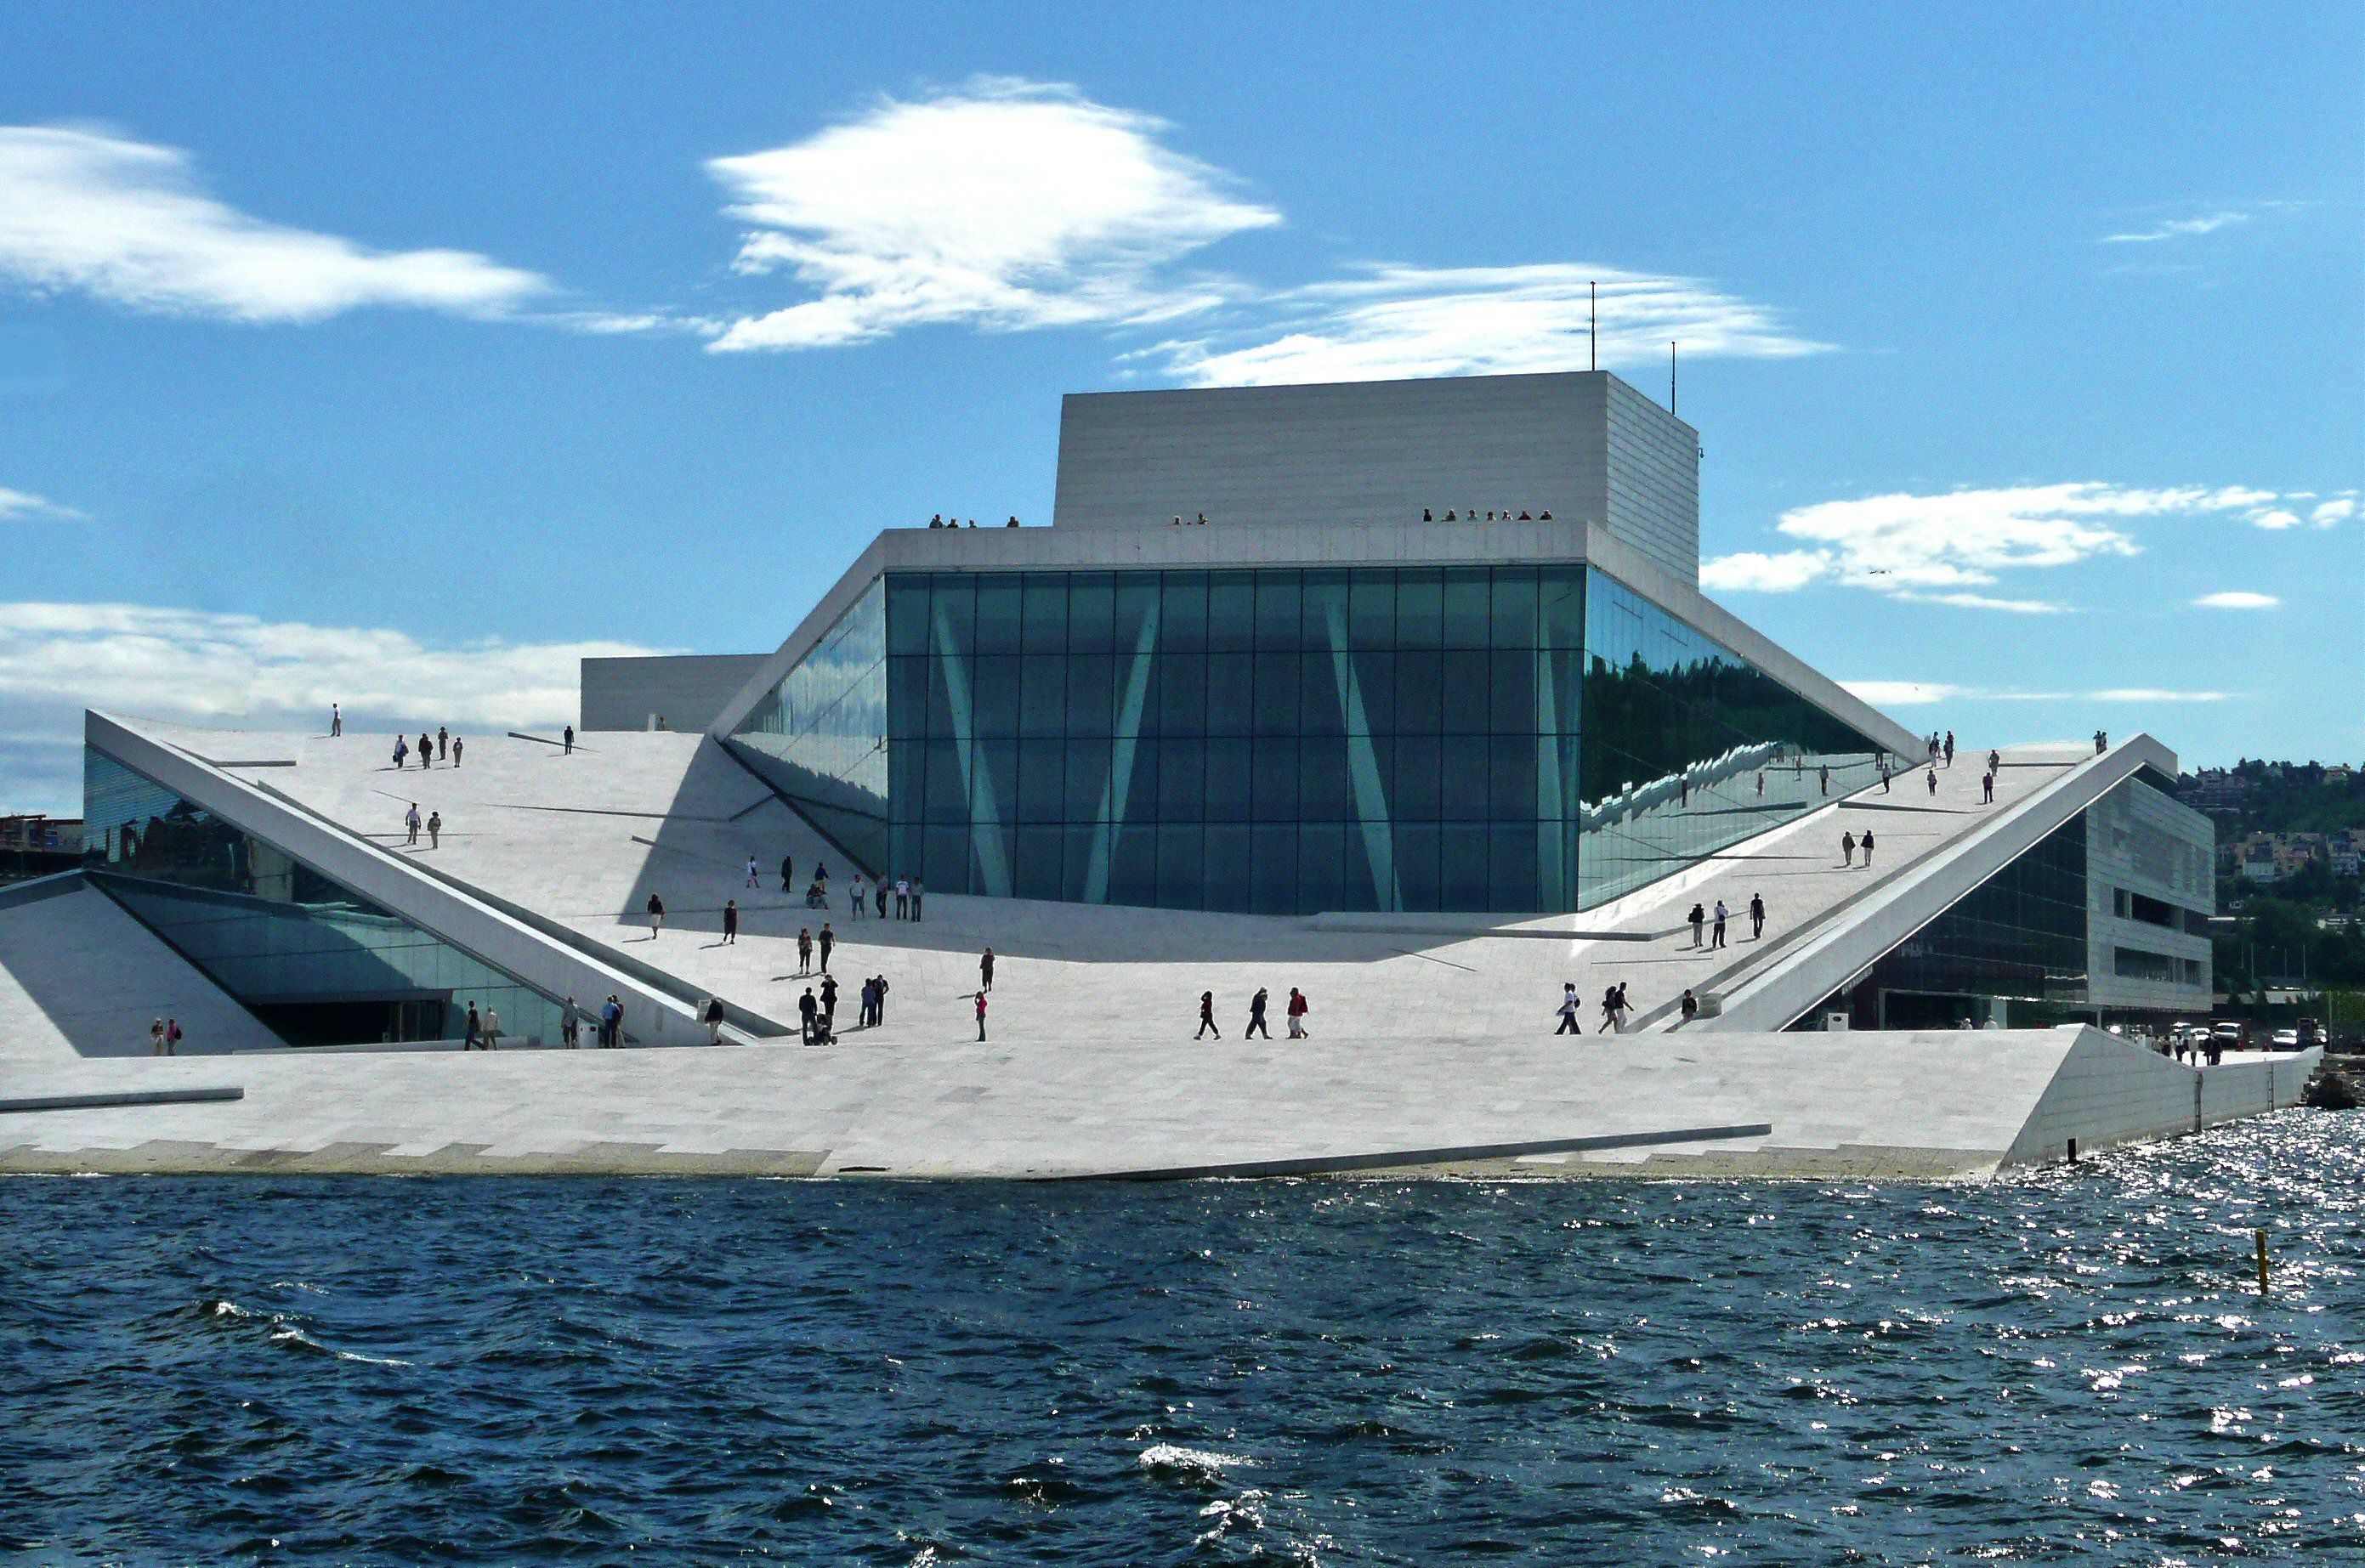 sweeping white stone ramps toward water with a sunglass-shaped building rising from the spaceport-like surroundings